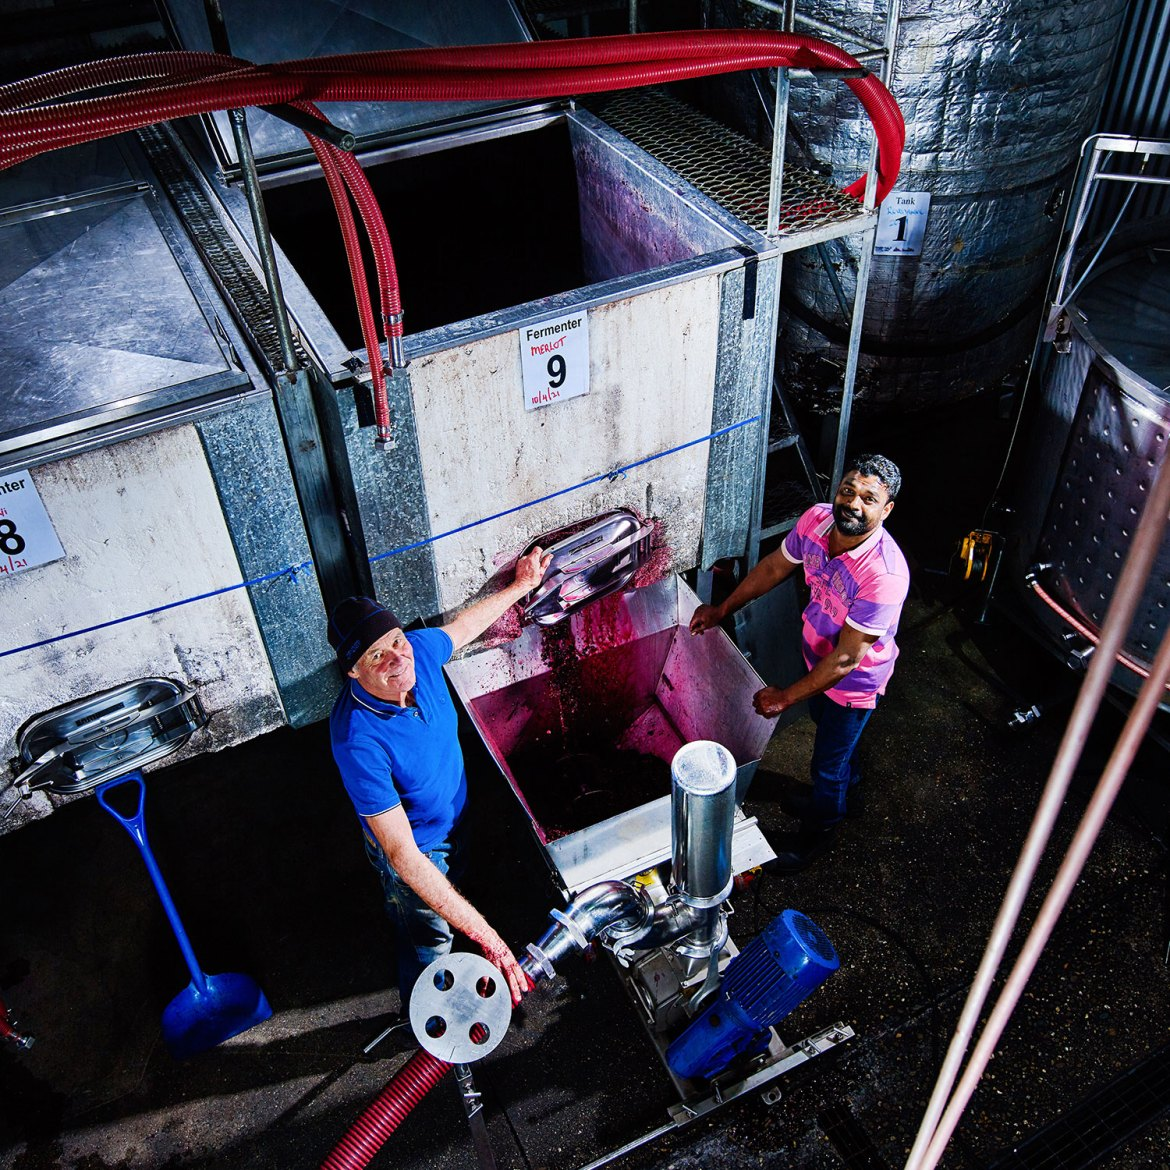 Winemaker John Stolks extracts juice from the winery's open vat fermenters, with assistant Manny